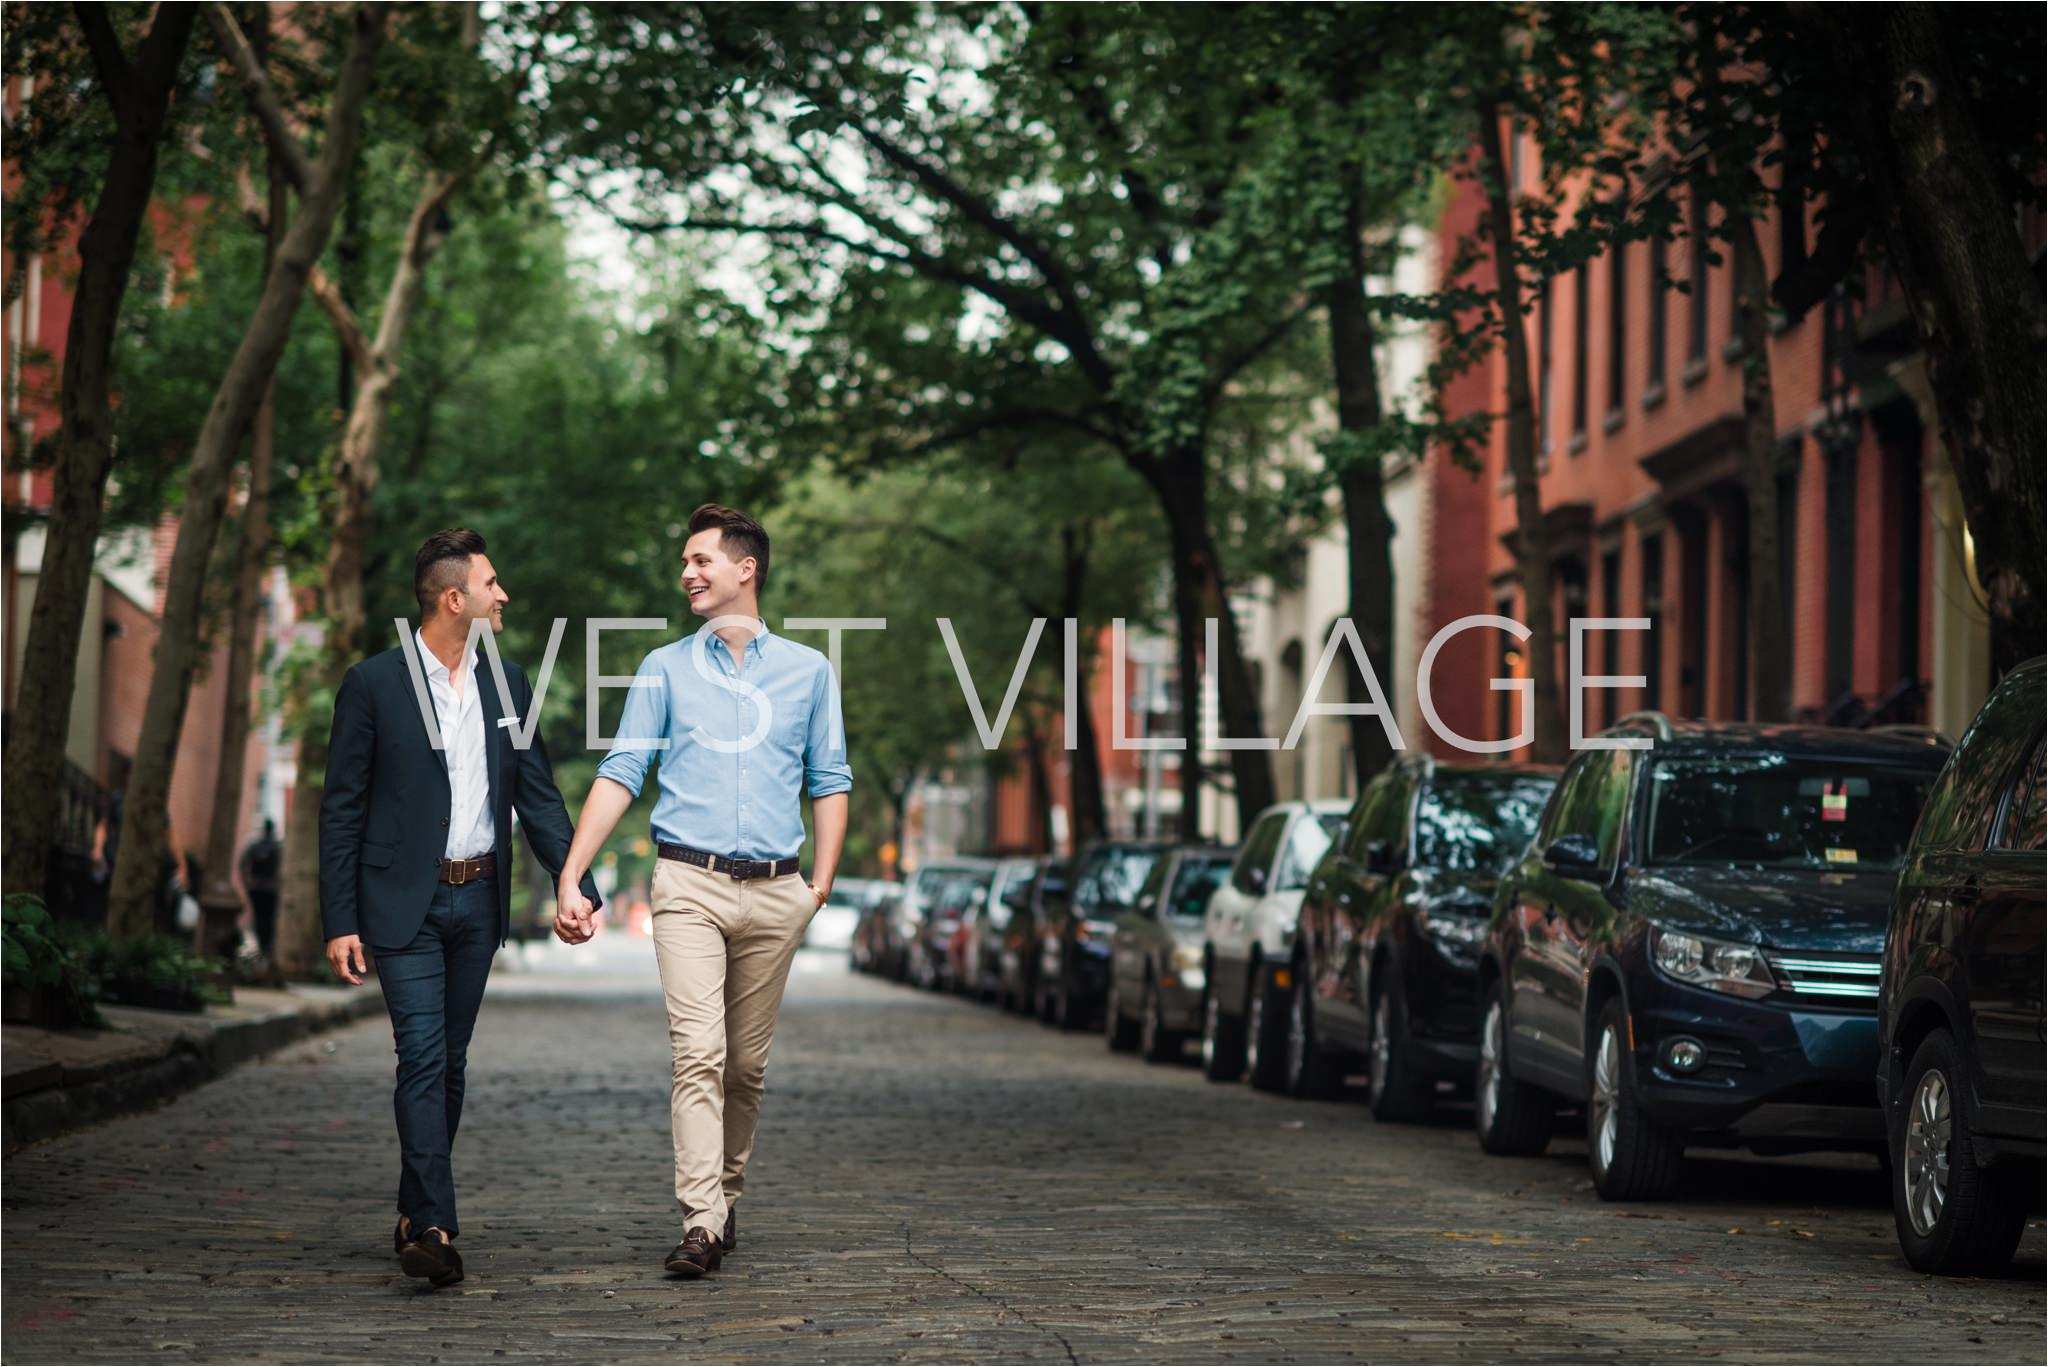 NYC Engagement Locations, West Village, Brian Hatton Photography